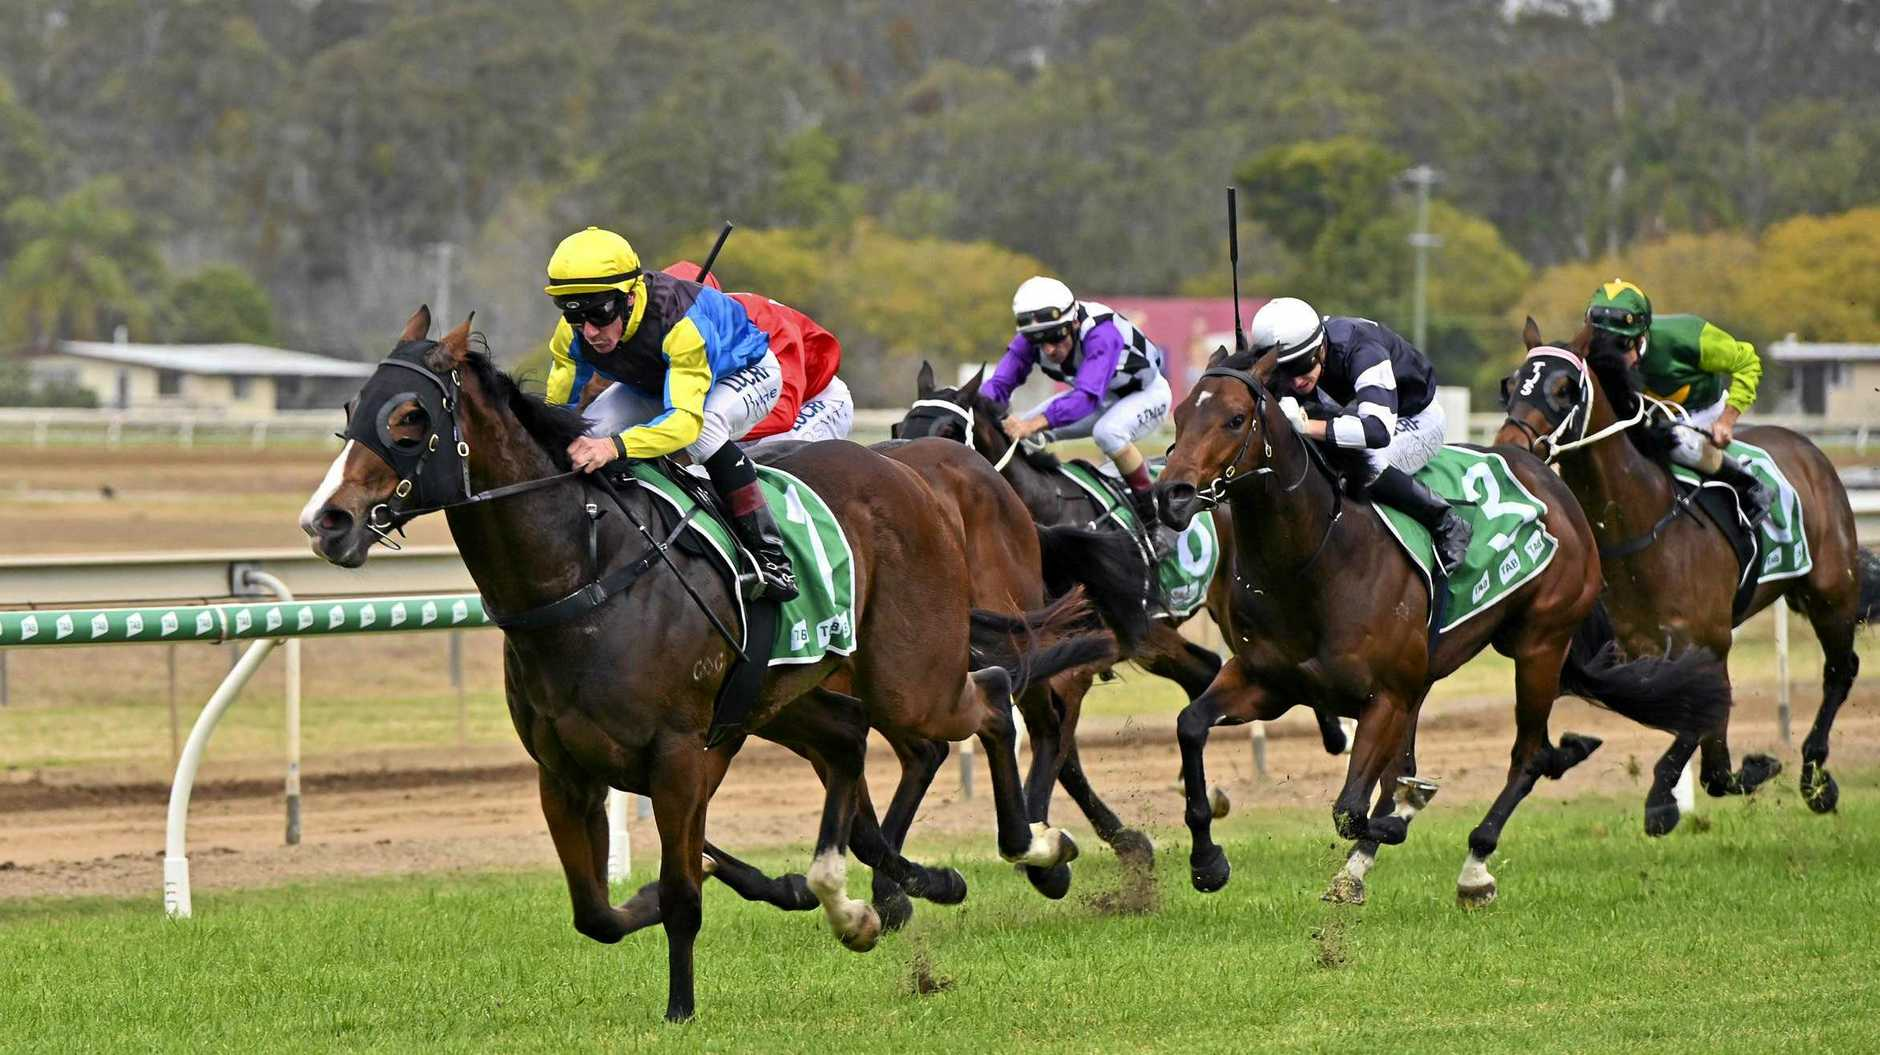 LEADING RUN: Jockey Jim Byrne guides Baby Boomer home at Ipswich racetrack.